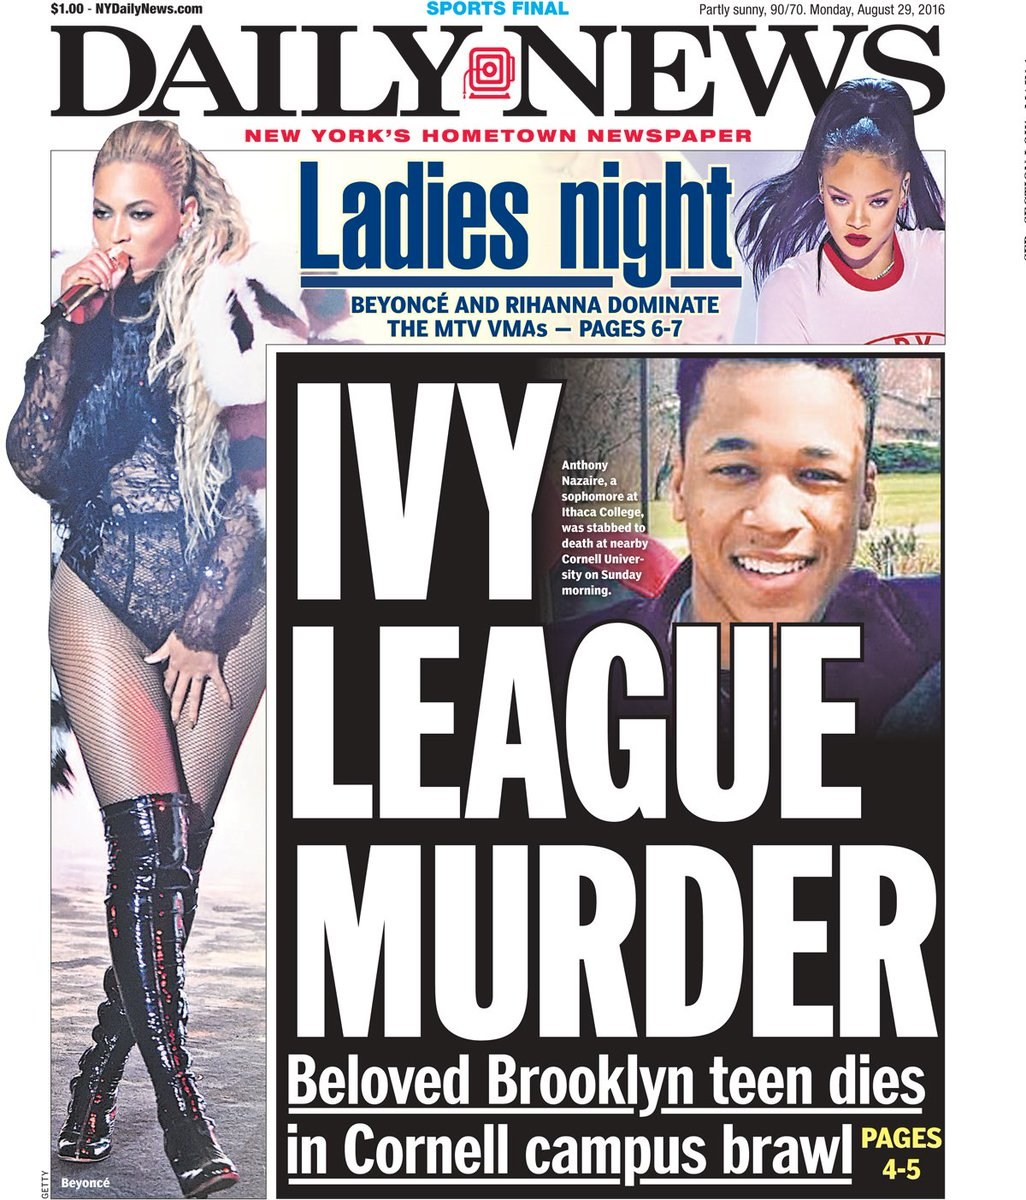 Today's front page: IVY LEAGUE MURDER - Beloved Brooklyn teen dies in Cornell campus brawl